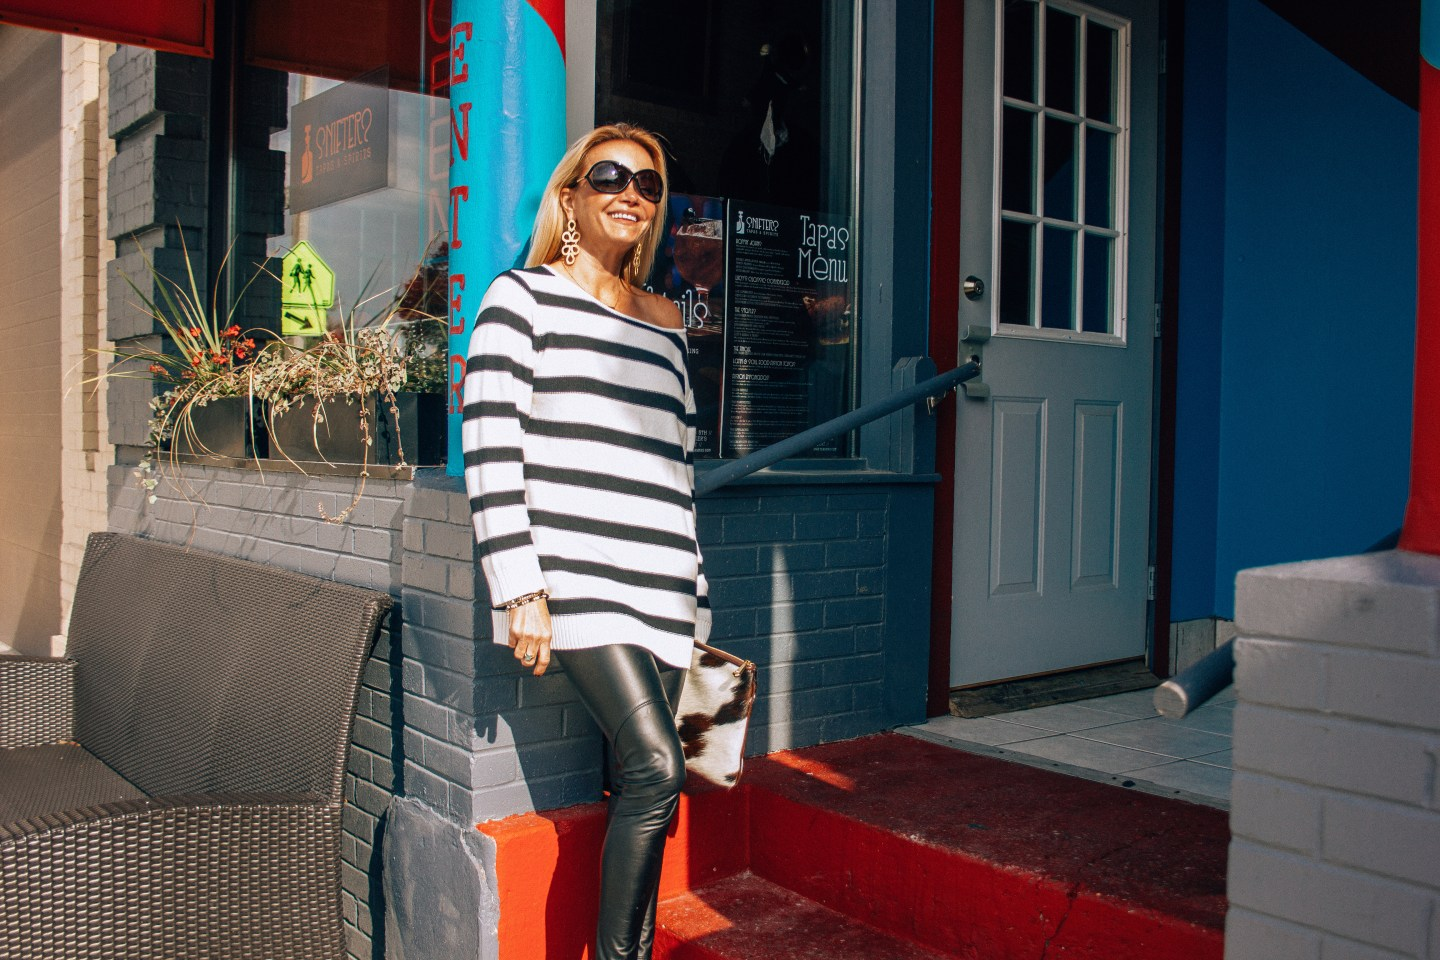 Lisi Lerch Ginger Earring with GigiNewYork Clutch and Striped Sweater